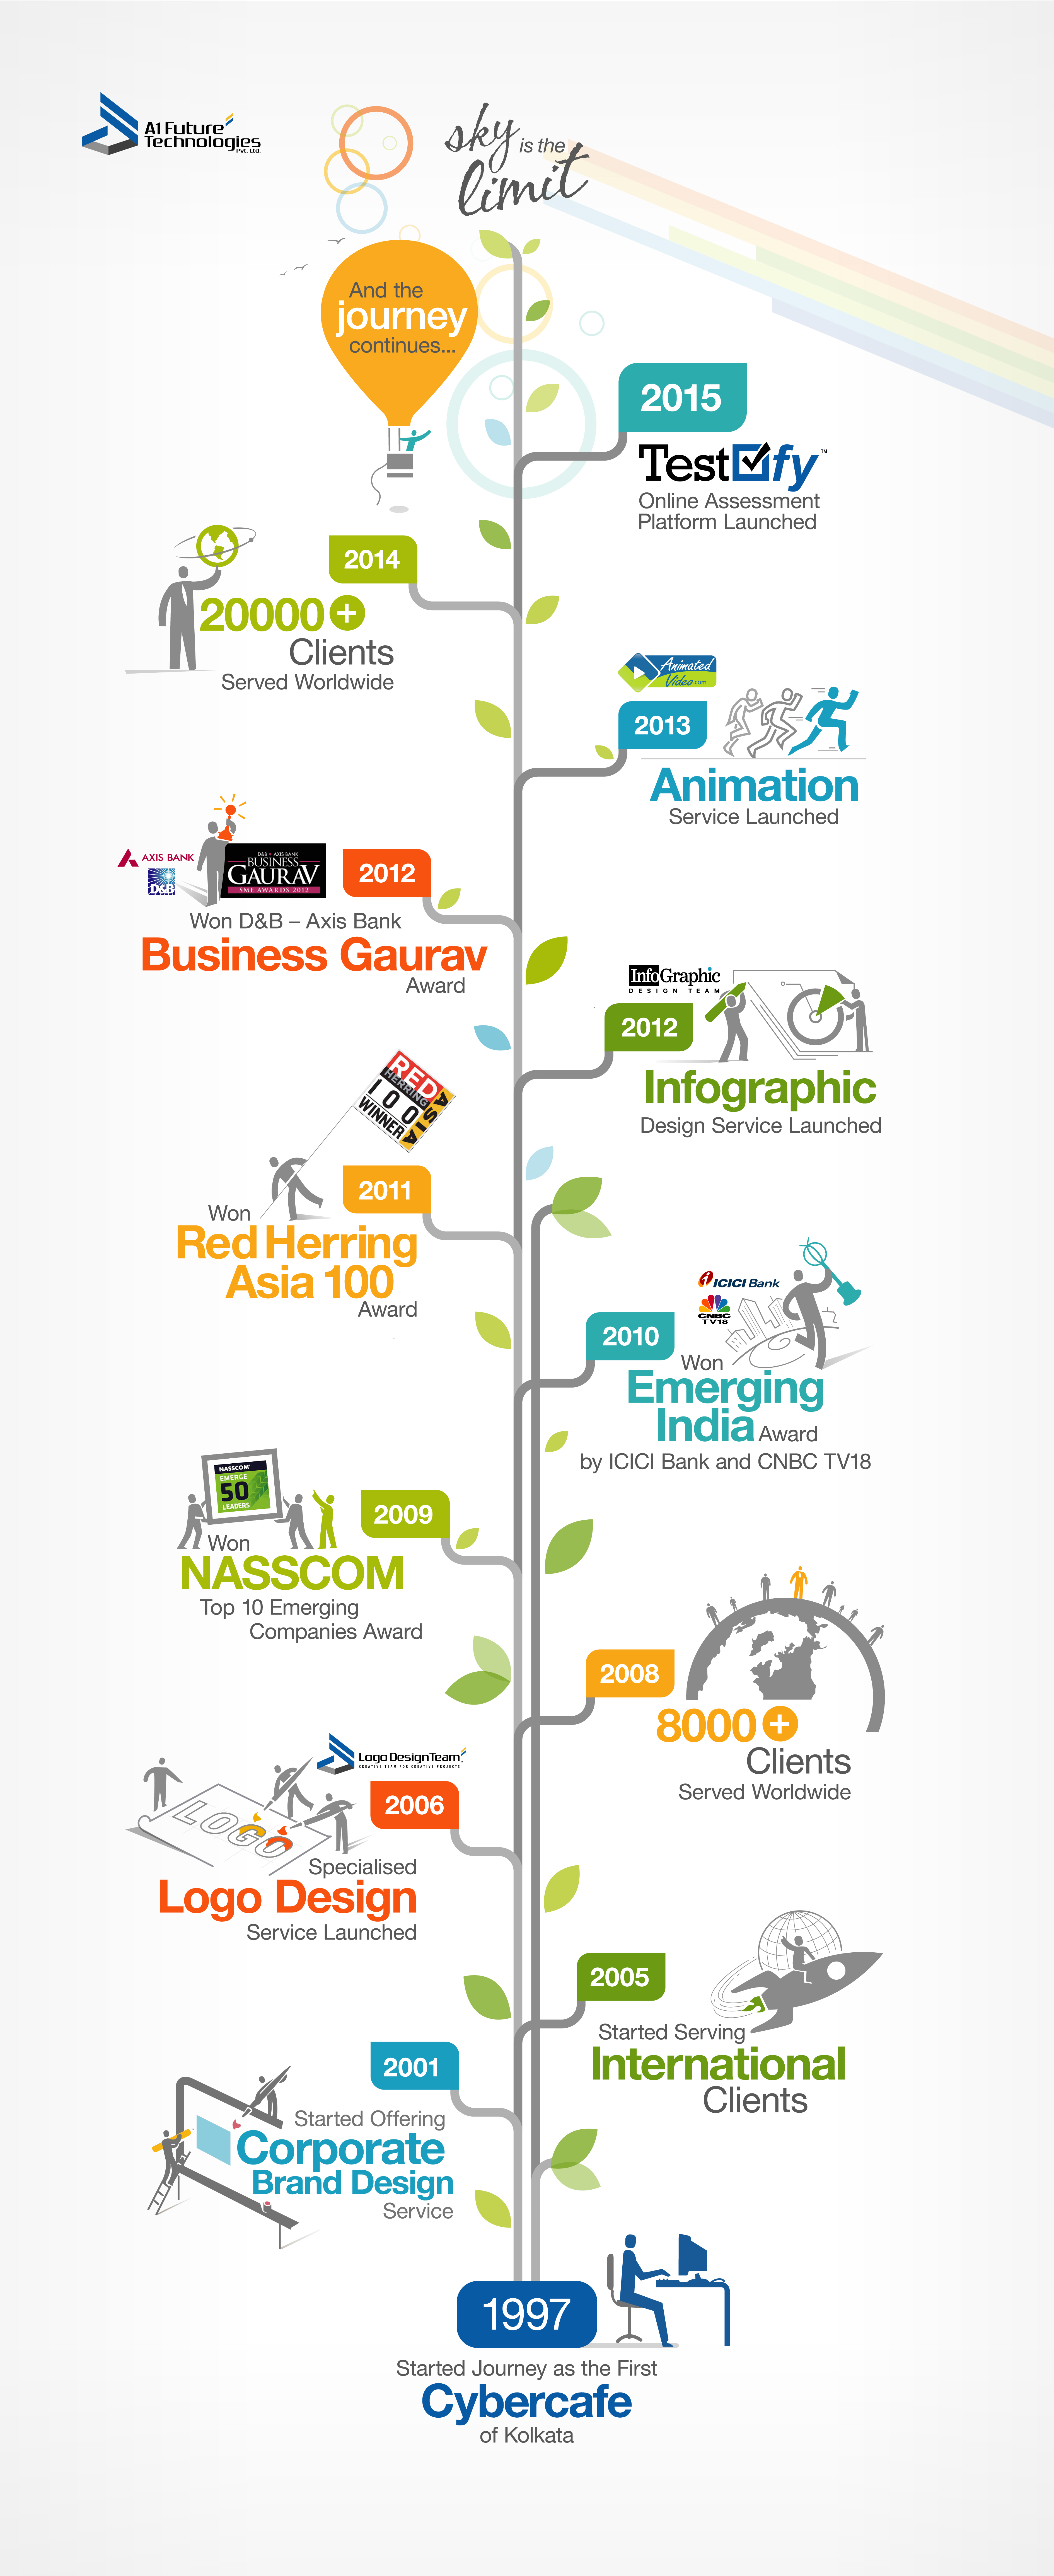 a1future-timeline-infographic